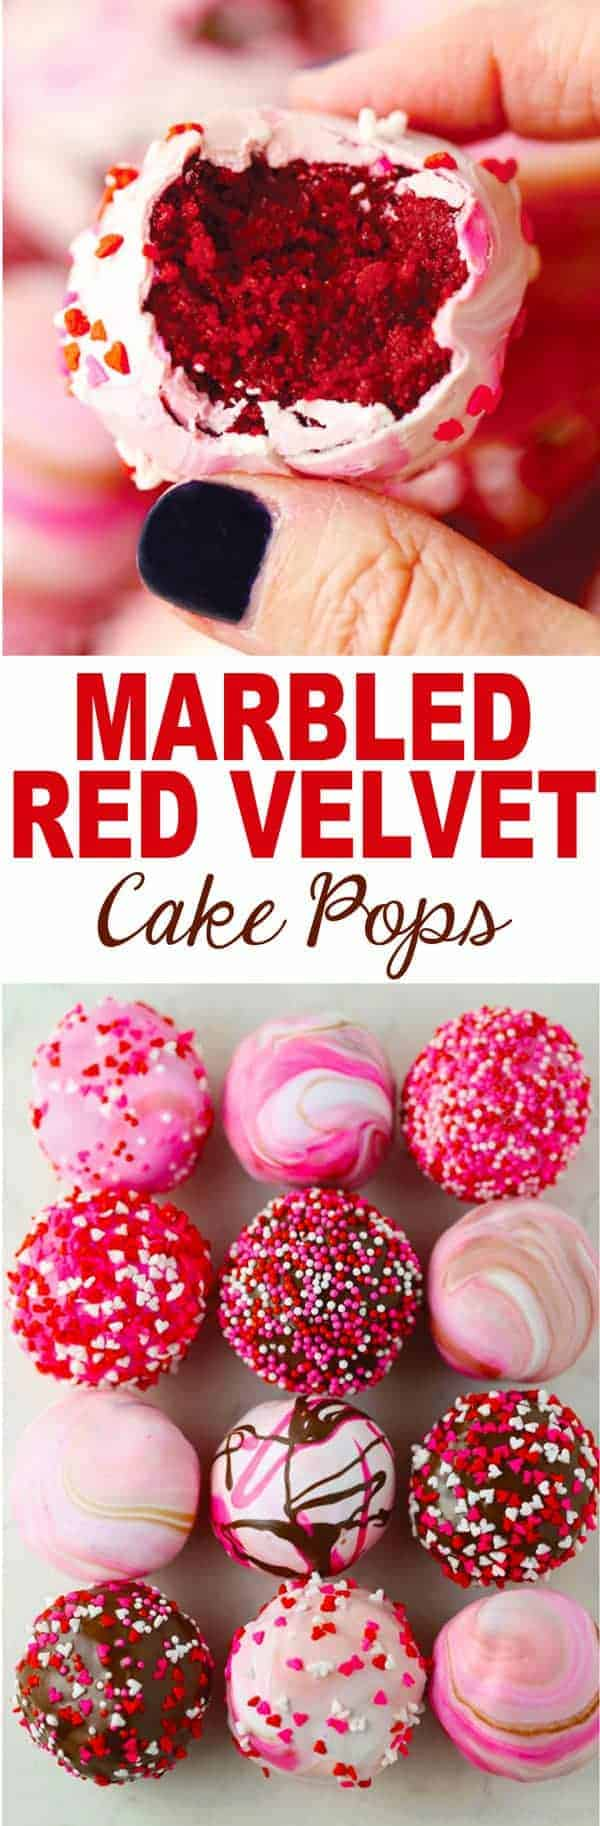 Marbled Red Velvet Cake Pops